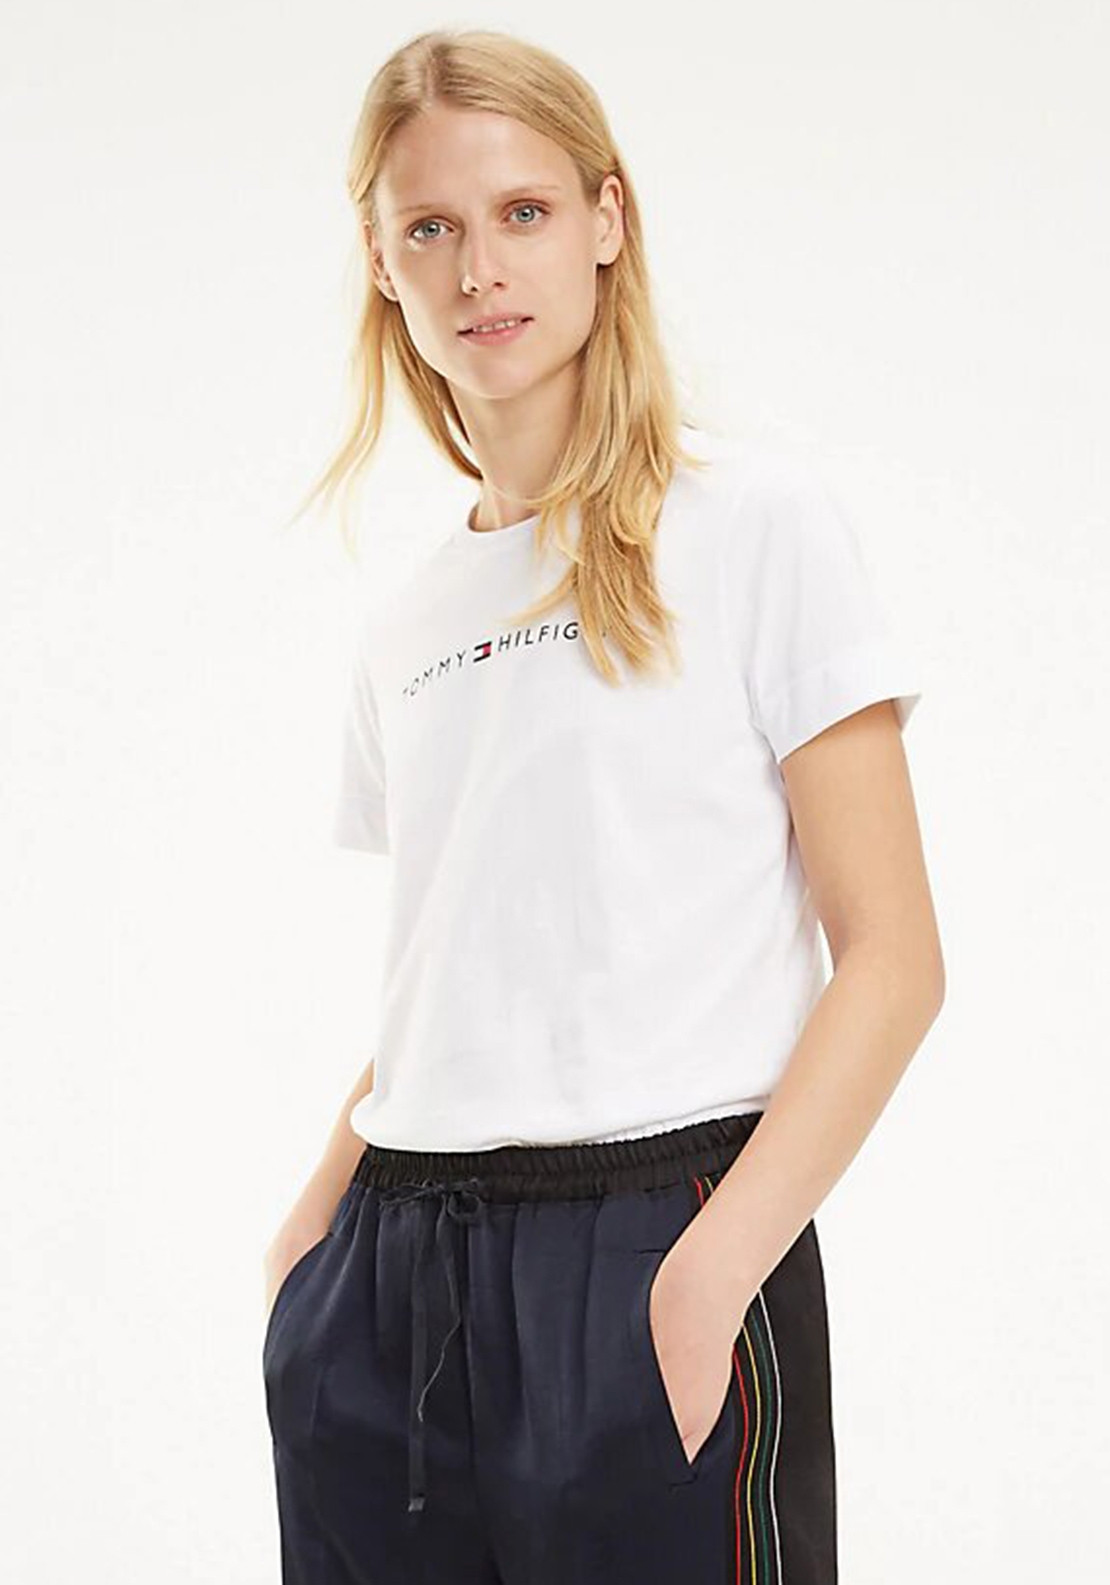 4afbcad2 Tommy Hilfiger Womens Logo T-Shirt, White. Be the first to review this  product